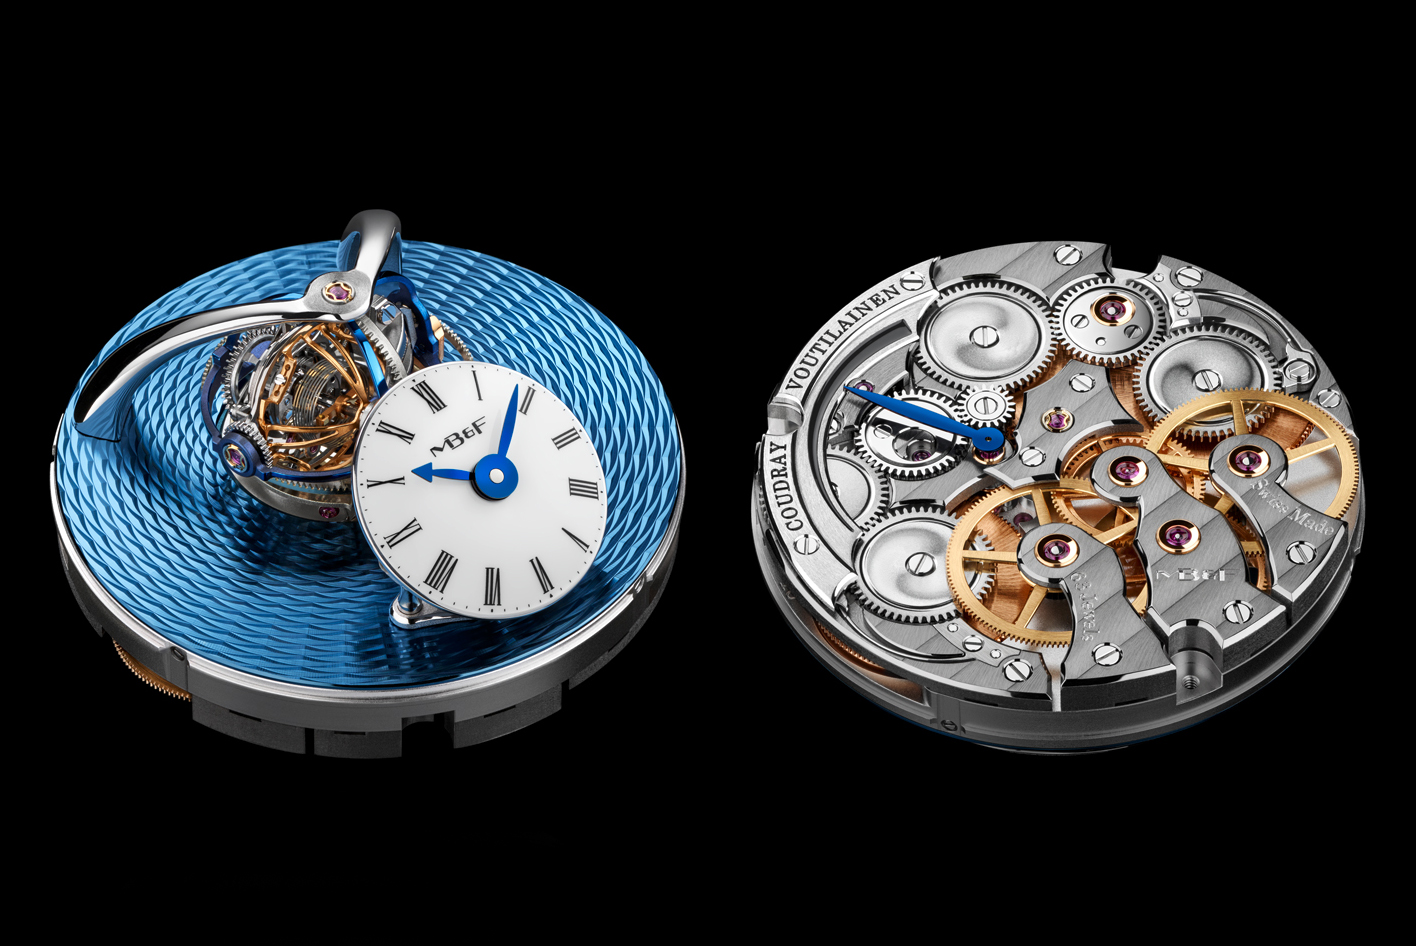 MB&F LM Thunderdome mouvement